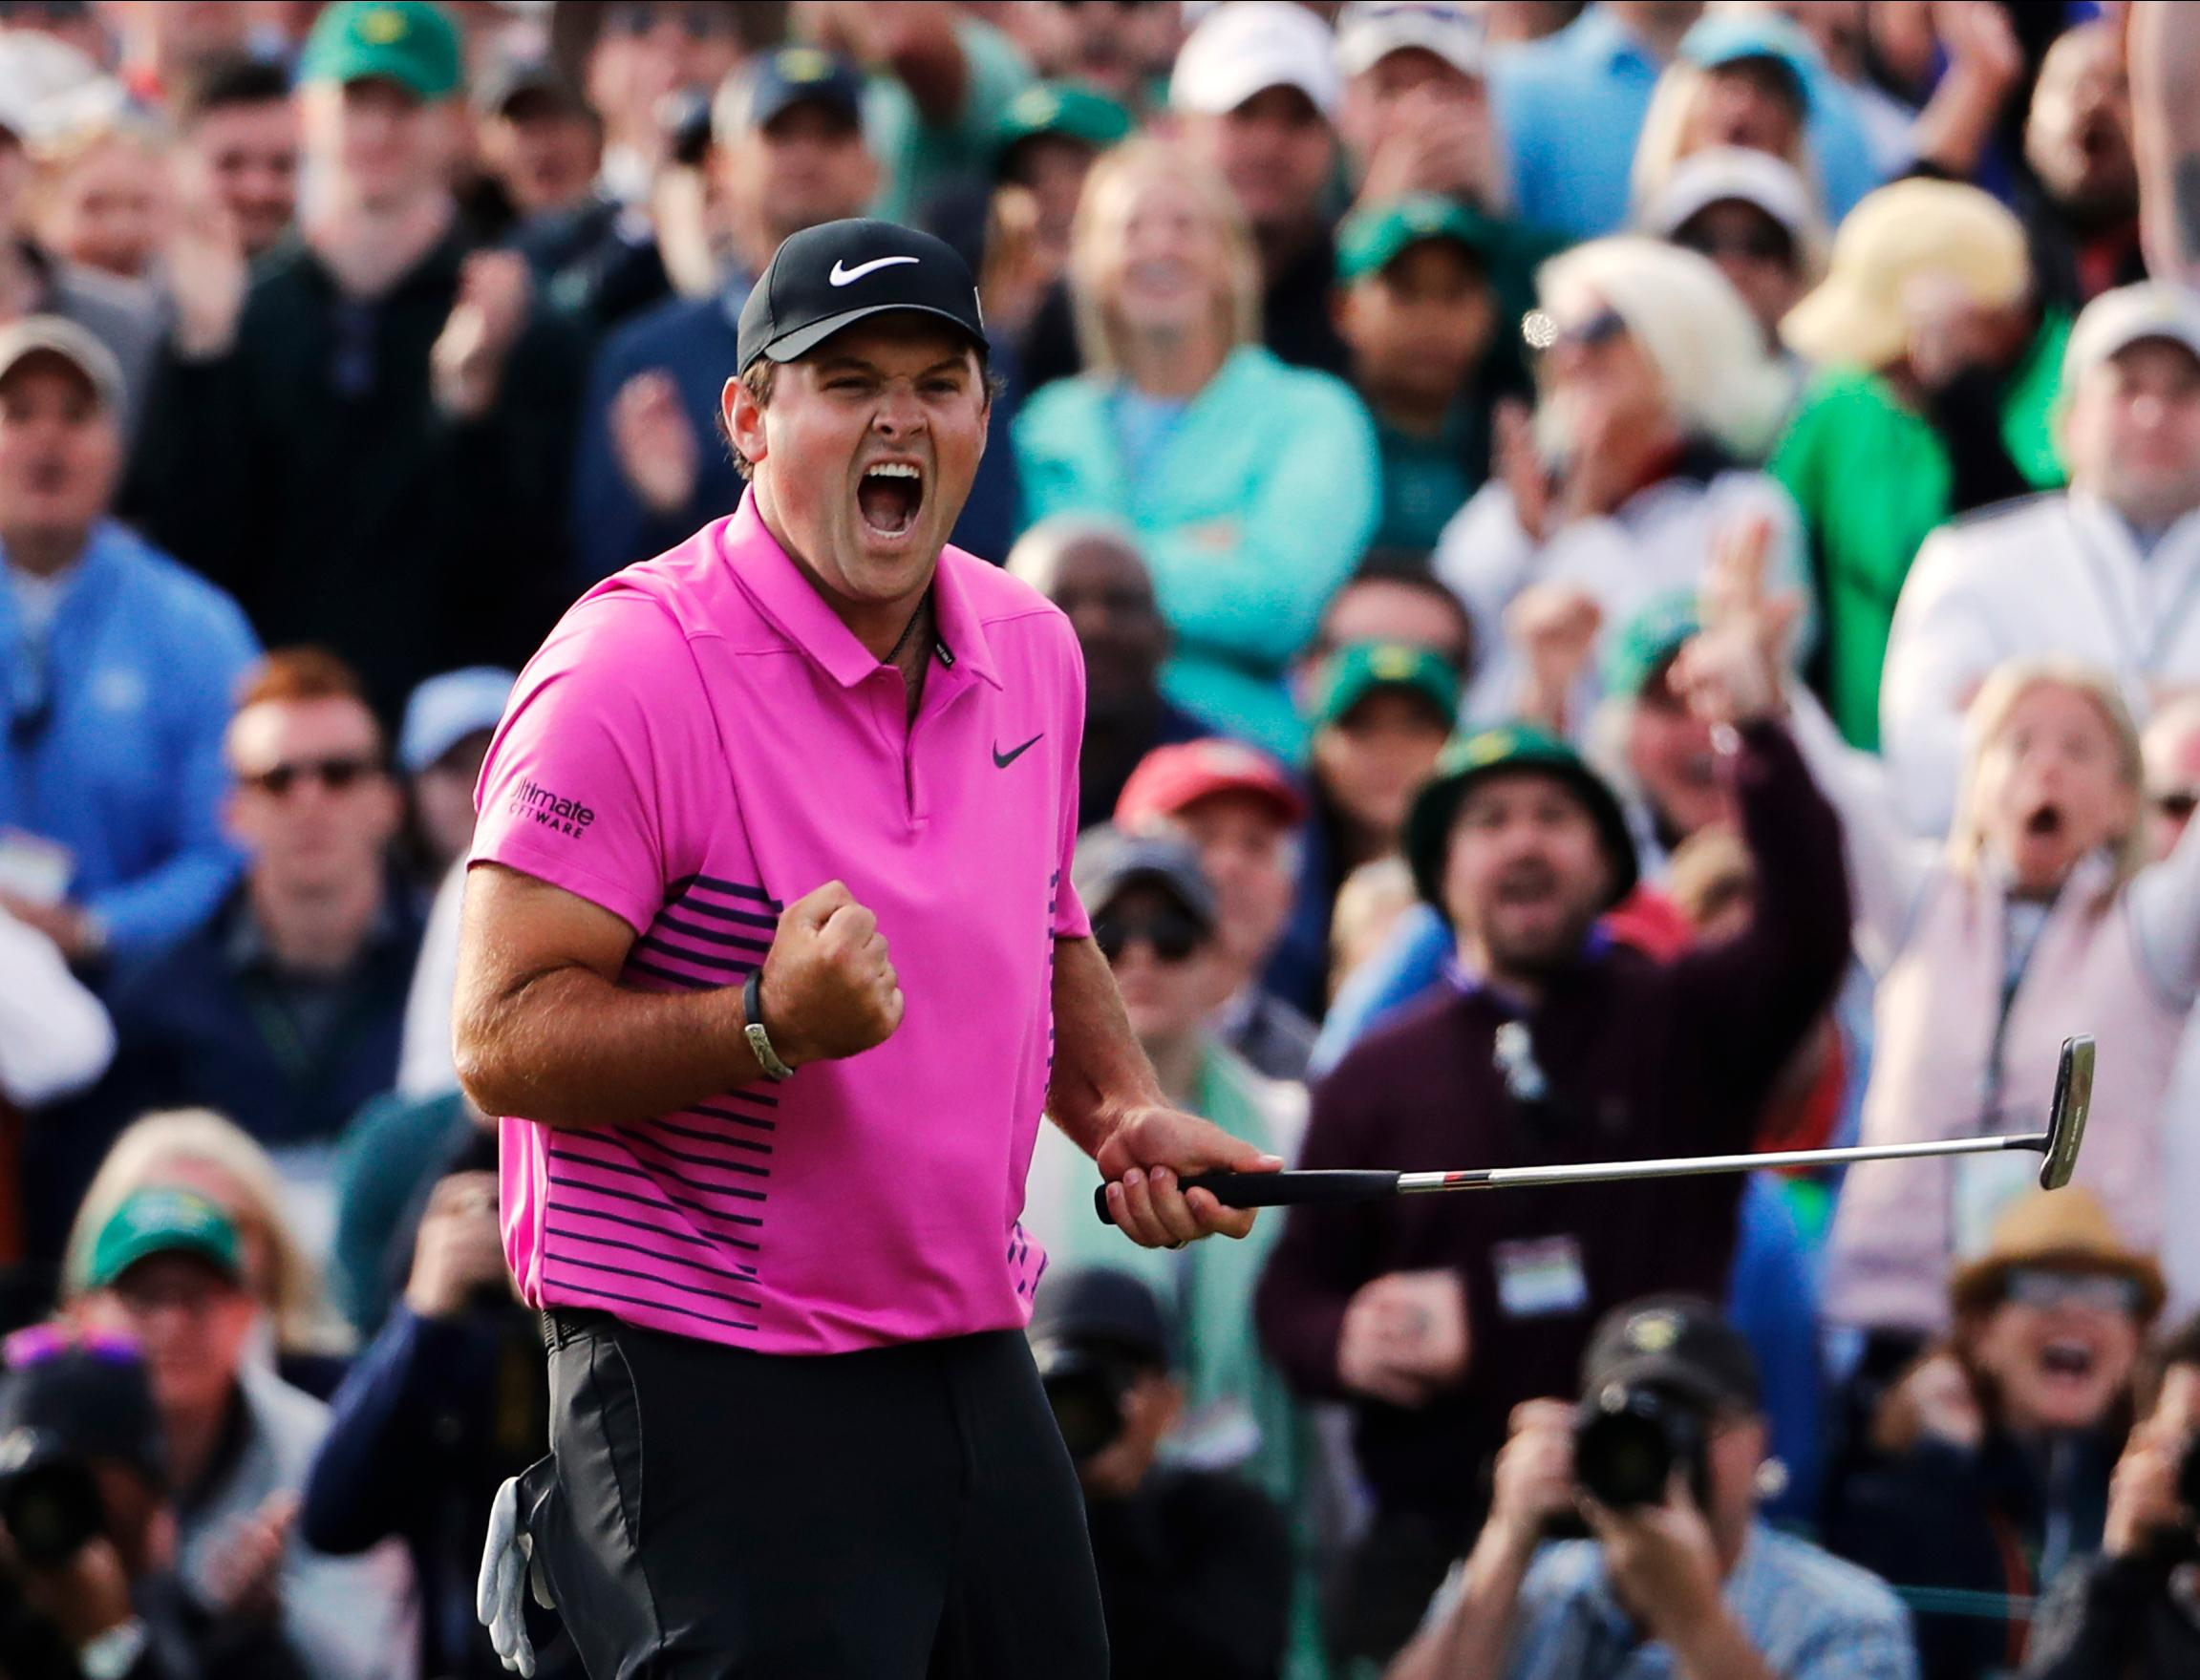 Patrick Reed celebrates winning the Masters after holding off challenges from Jordan Spieth and Rickie Fowler